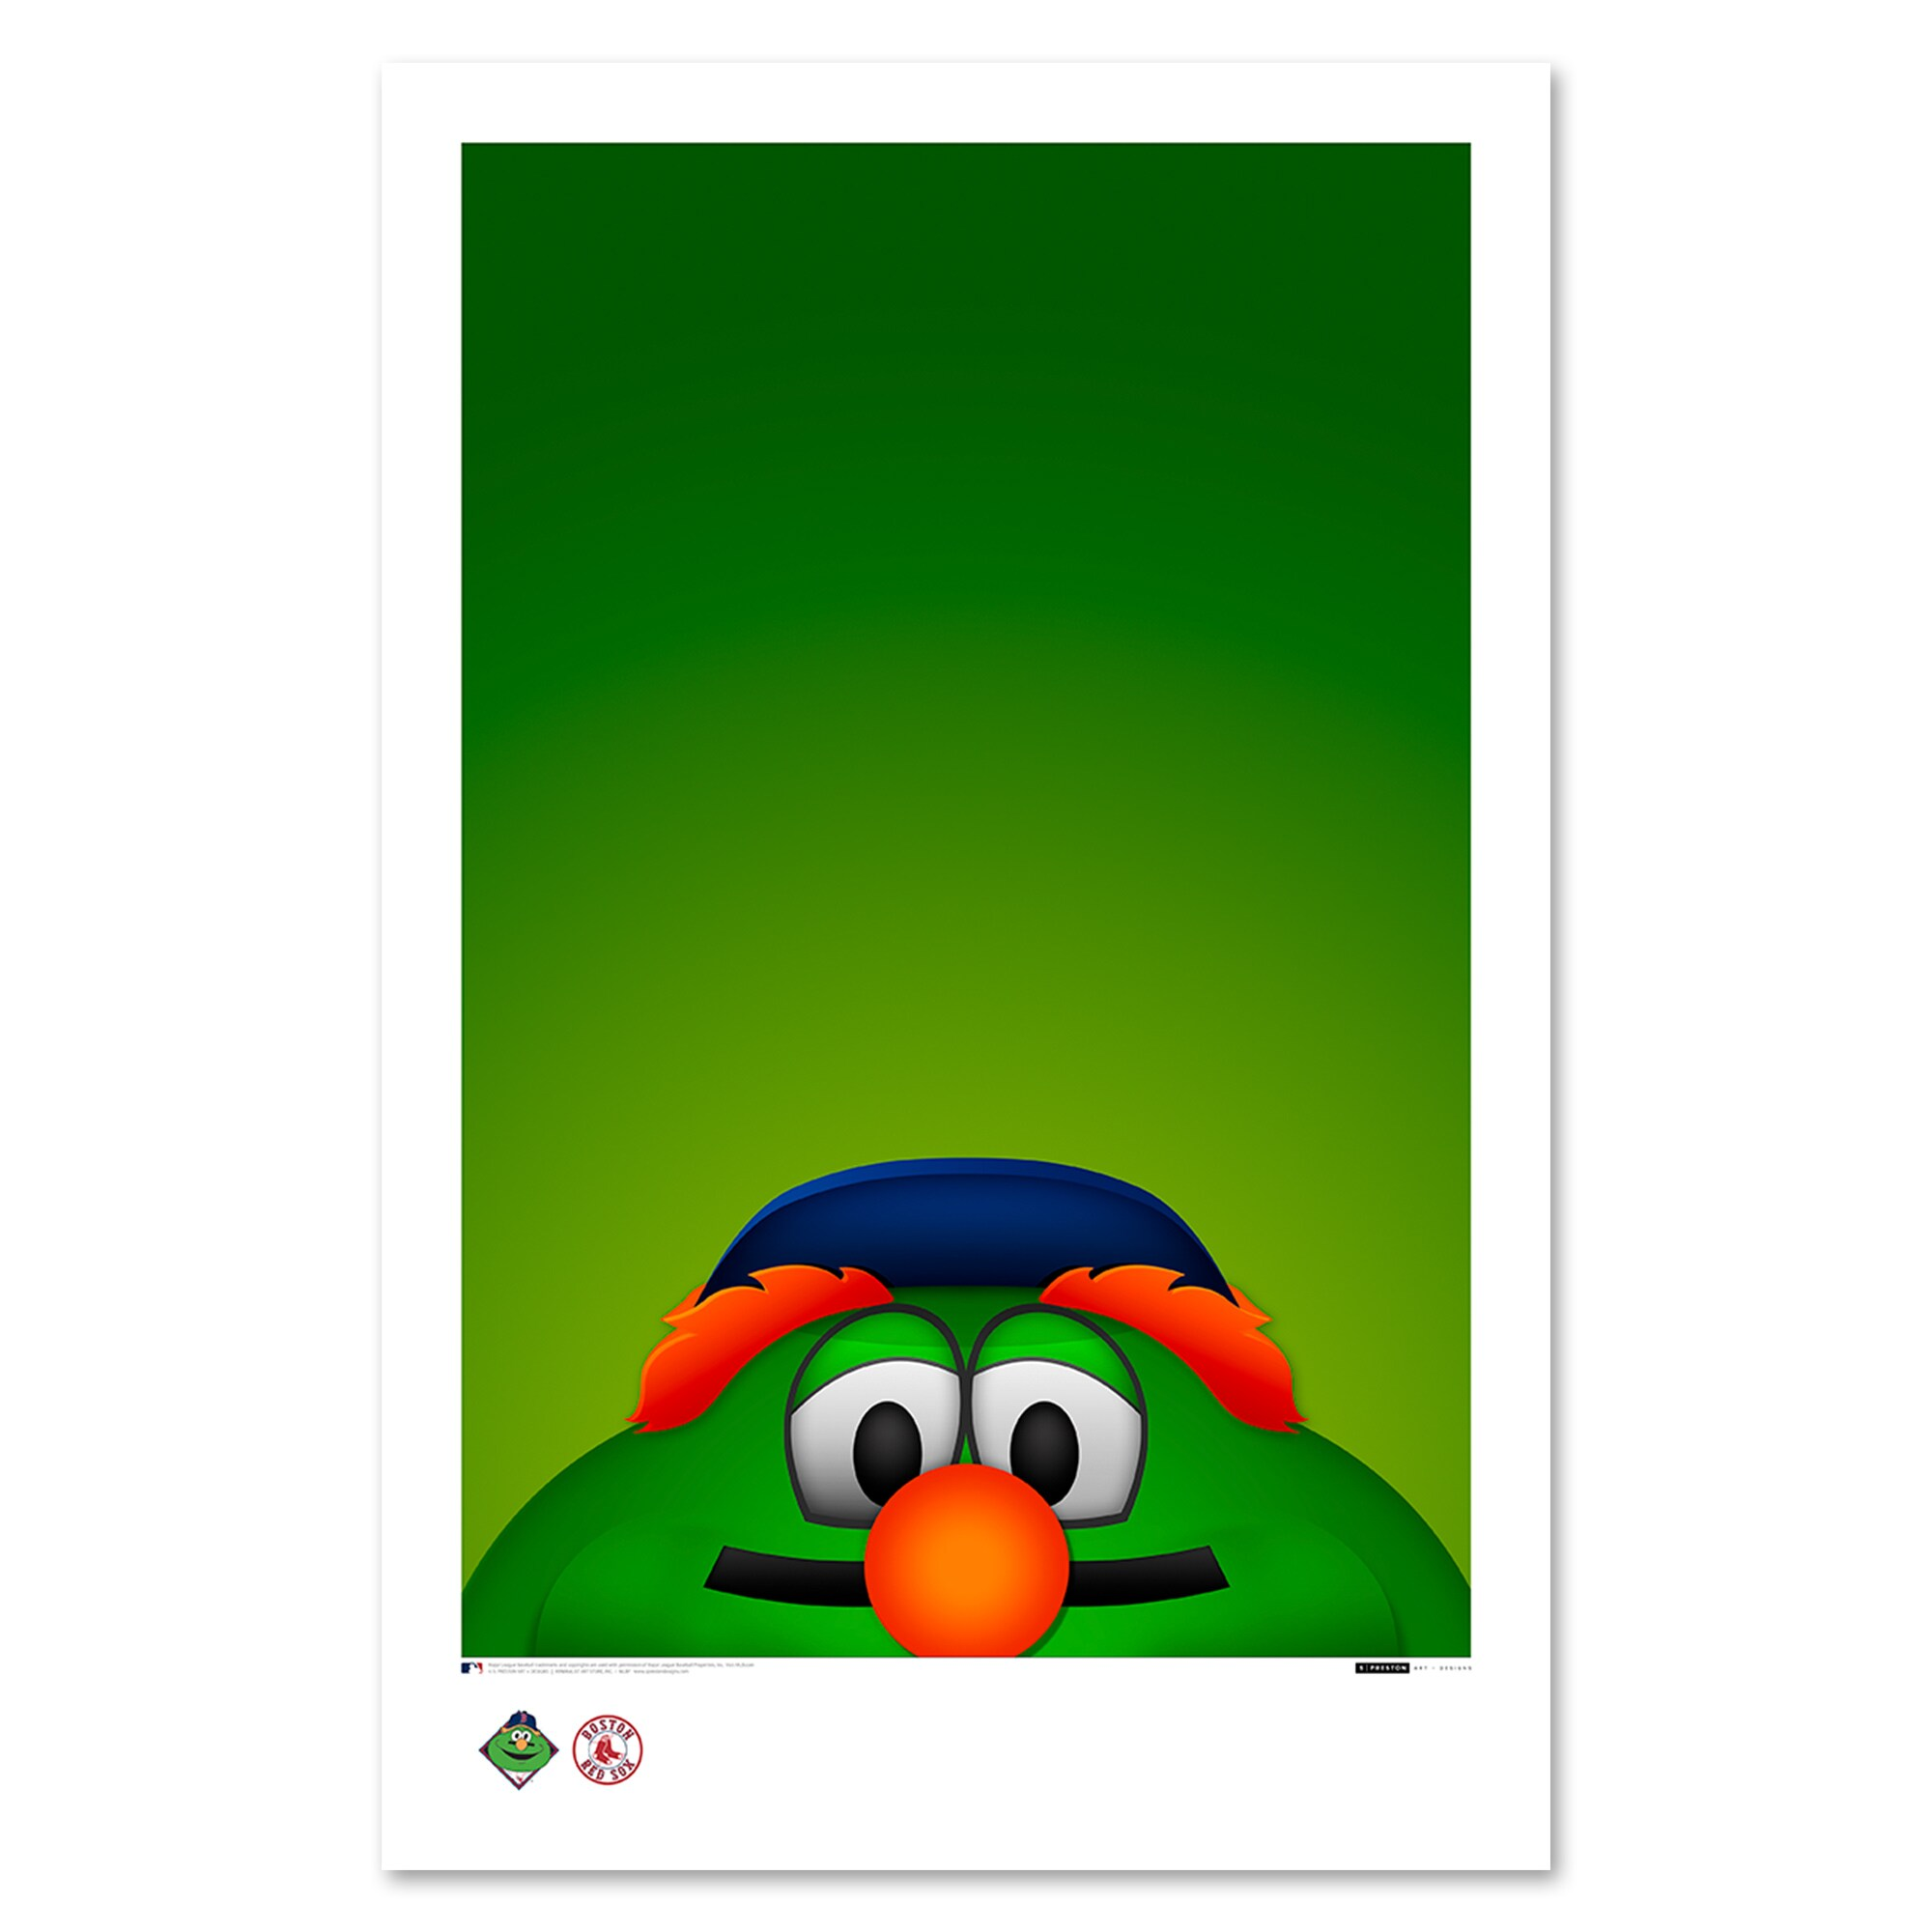 "Boston Red Sox 11"" x 17"" Minimalist Wally The Green Monster Wall Art"